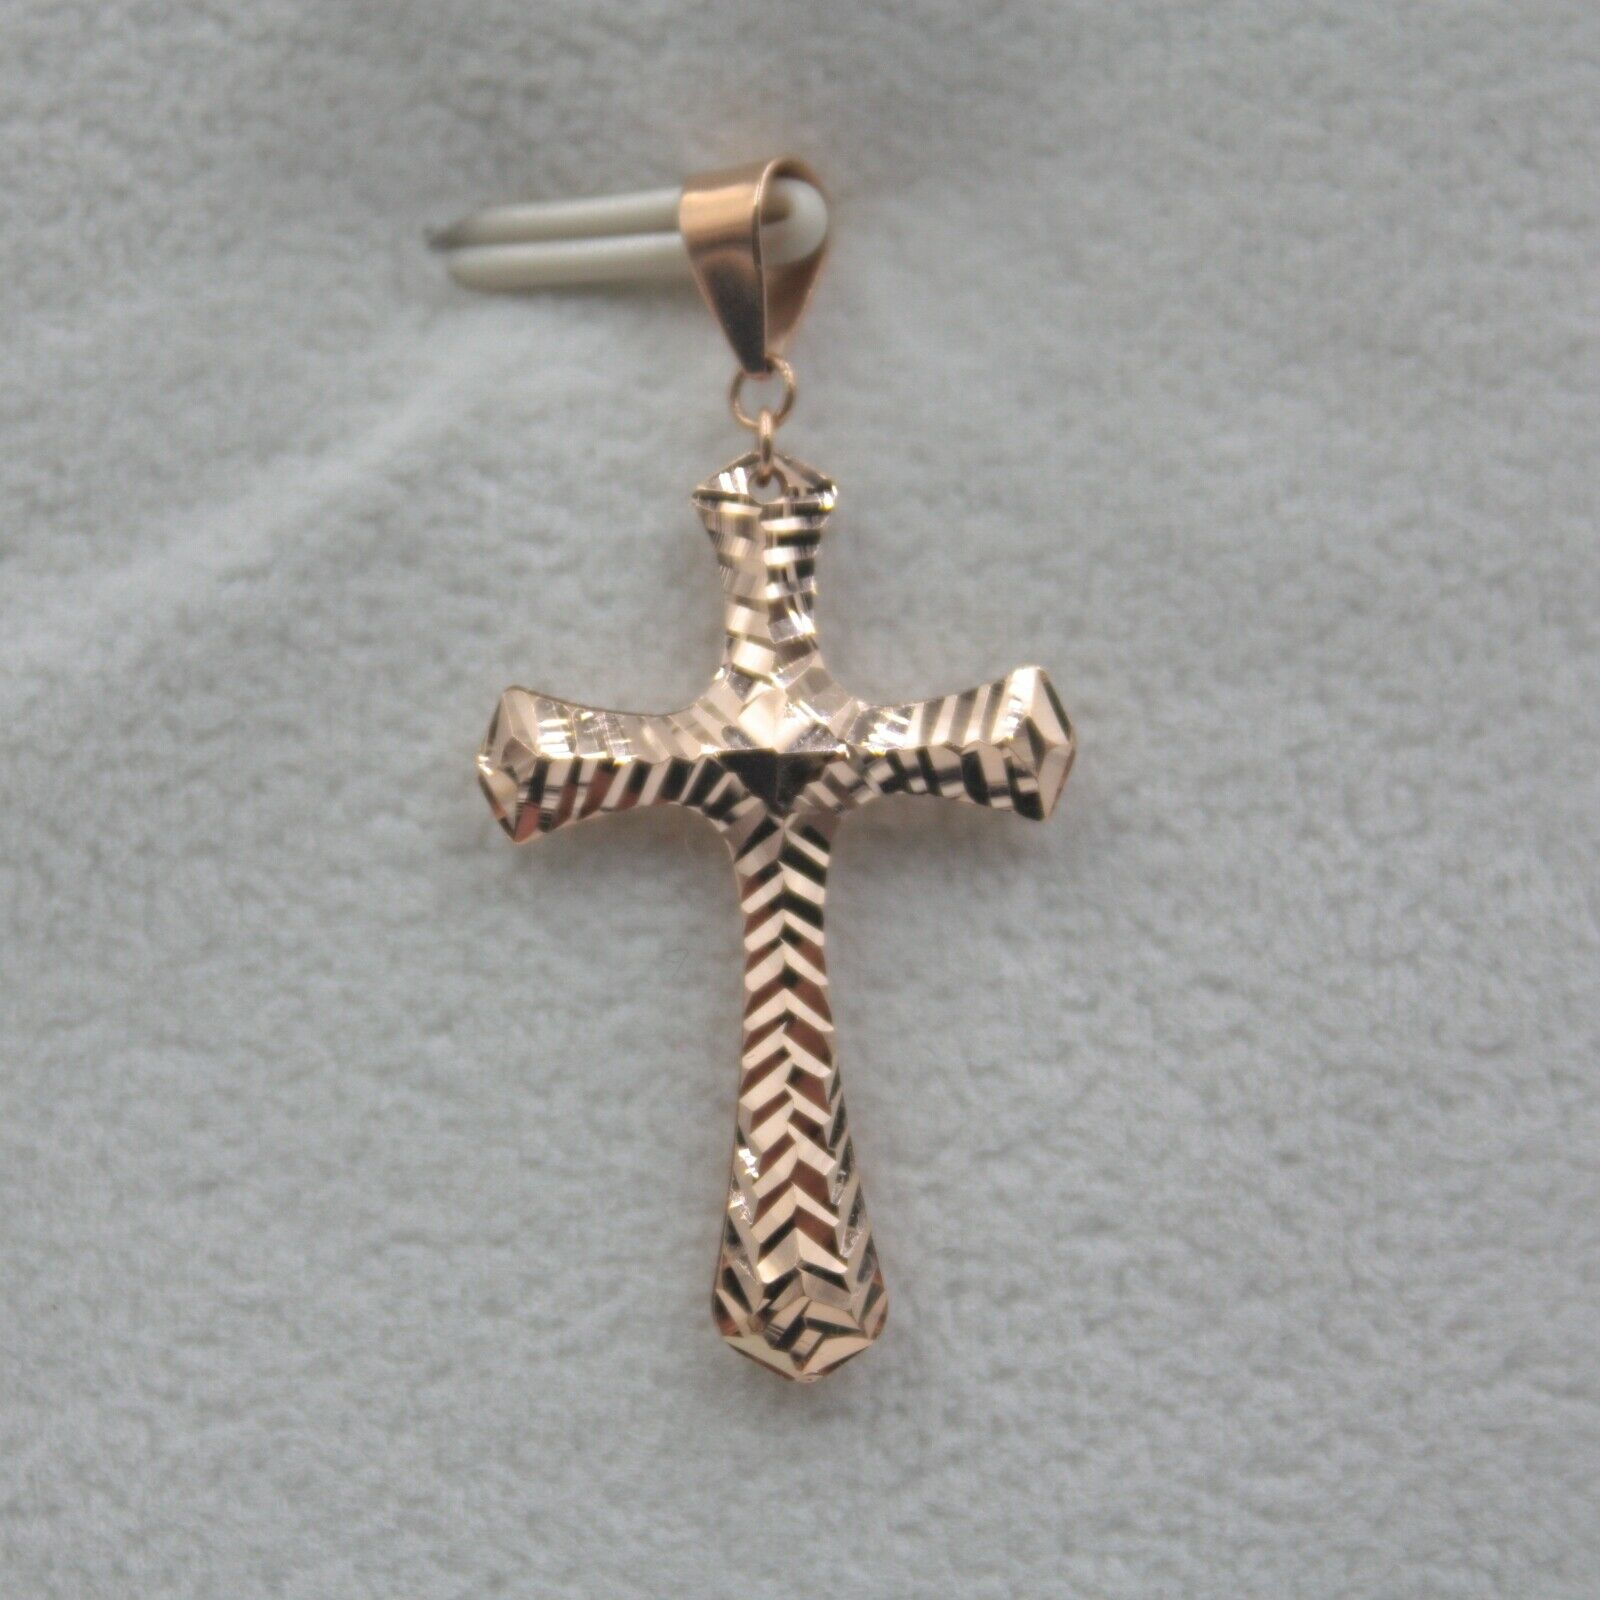 Pure Au750 18K pink gold Men Women Fashion Cross Pendant 1.1g   3112mm